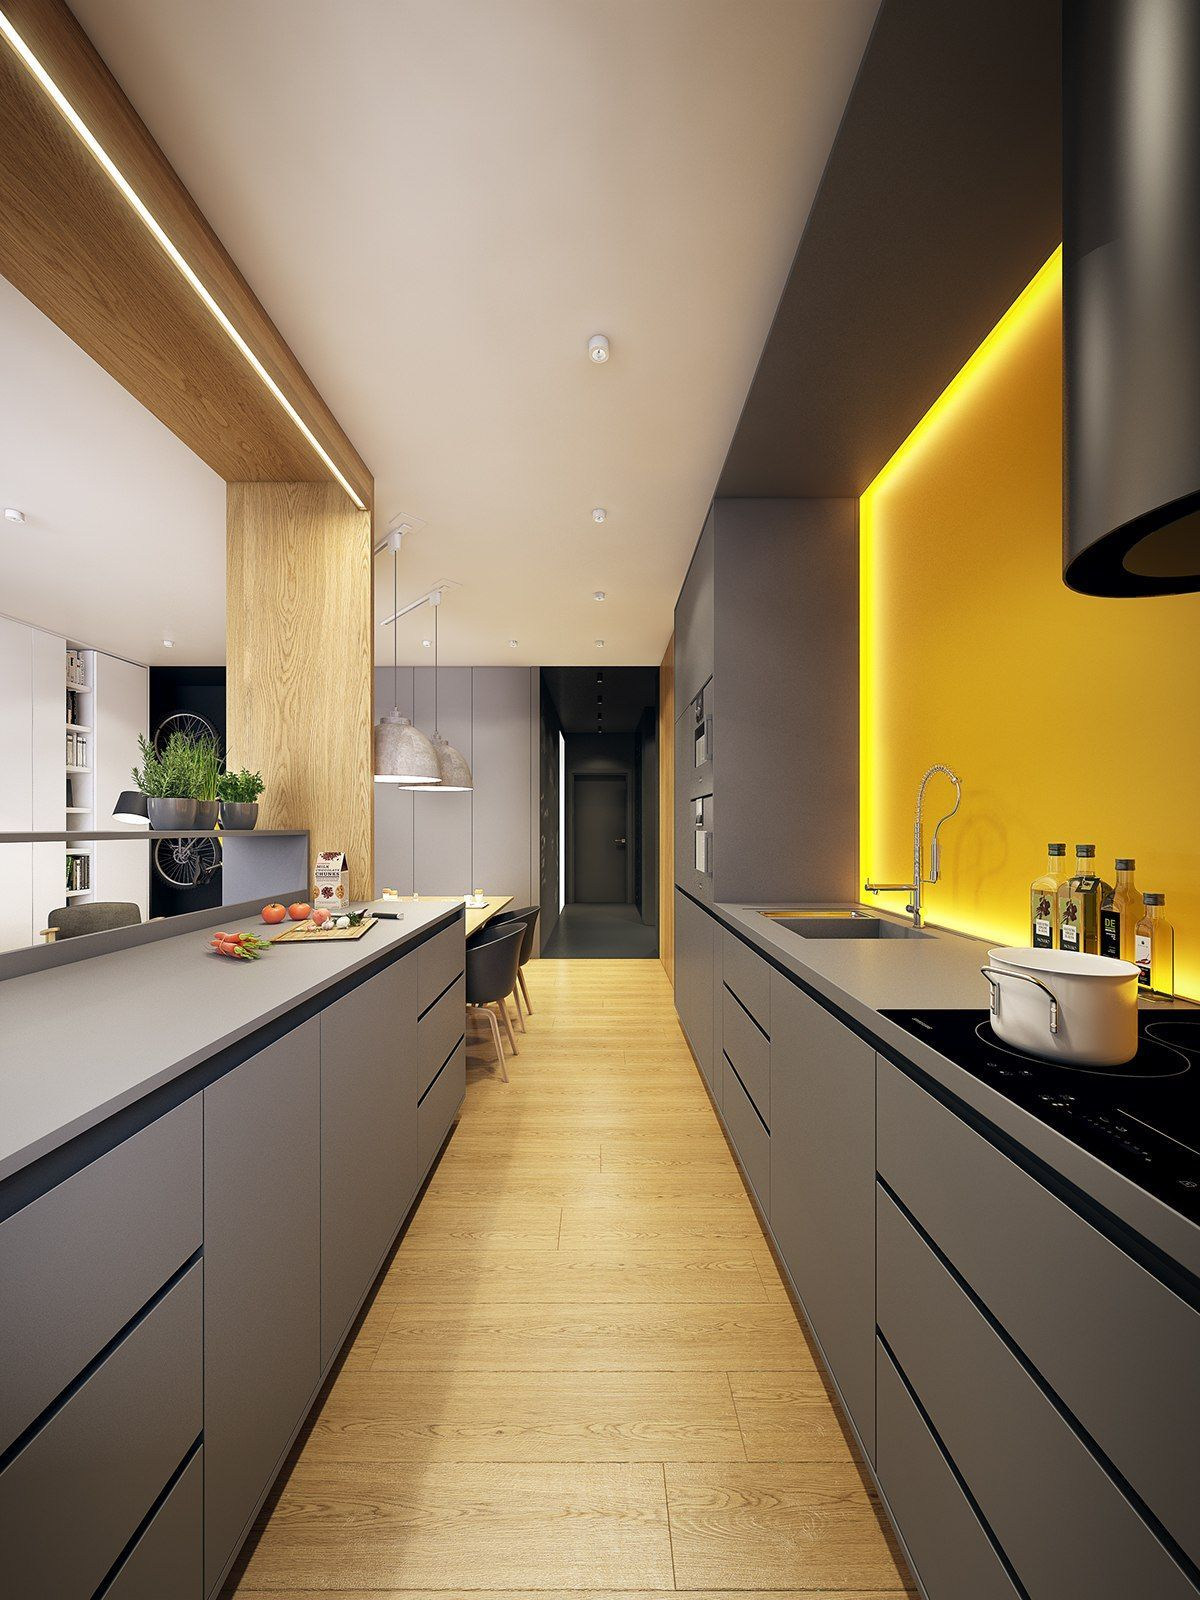 Painting Your Kitchen Cabinets Is No Small Undertaking: Everything About Painted Kitchen Cabinet Ideas Diy, Two